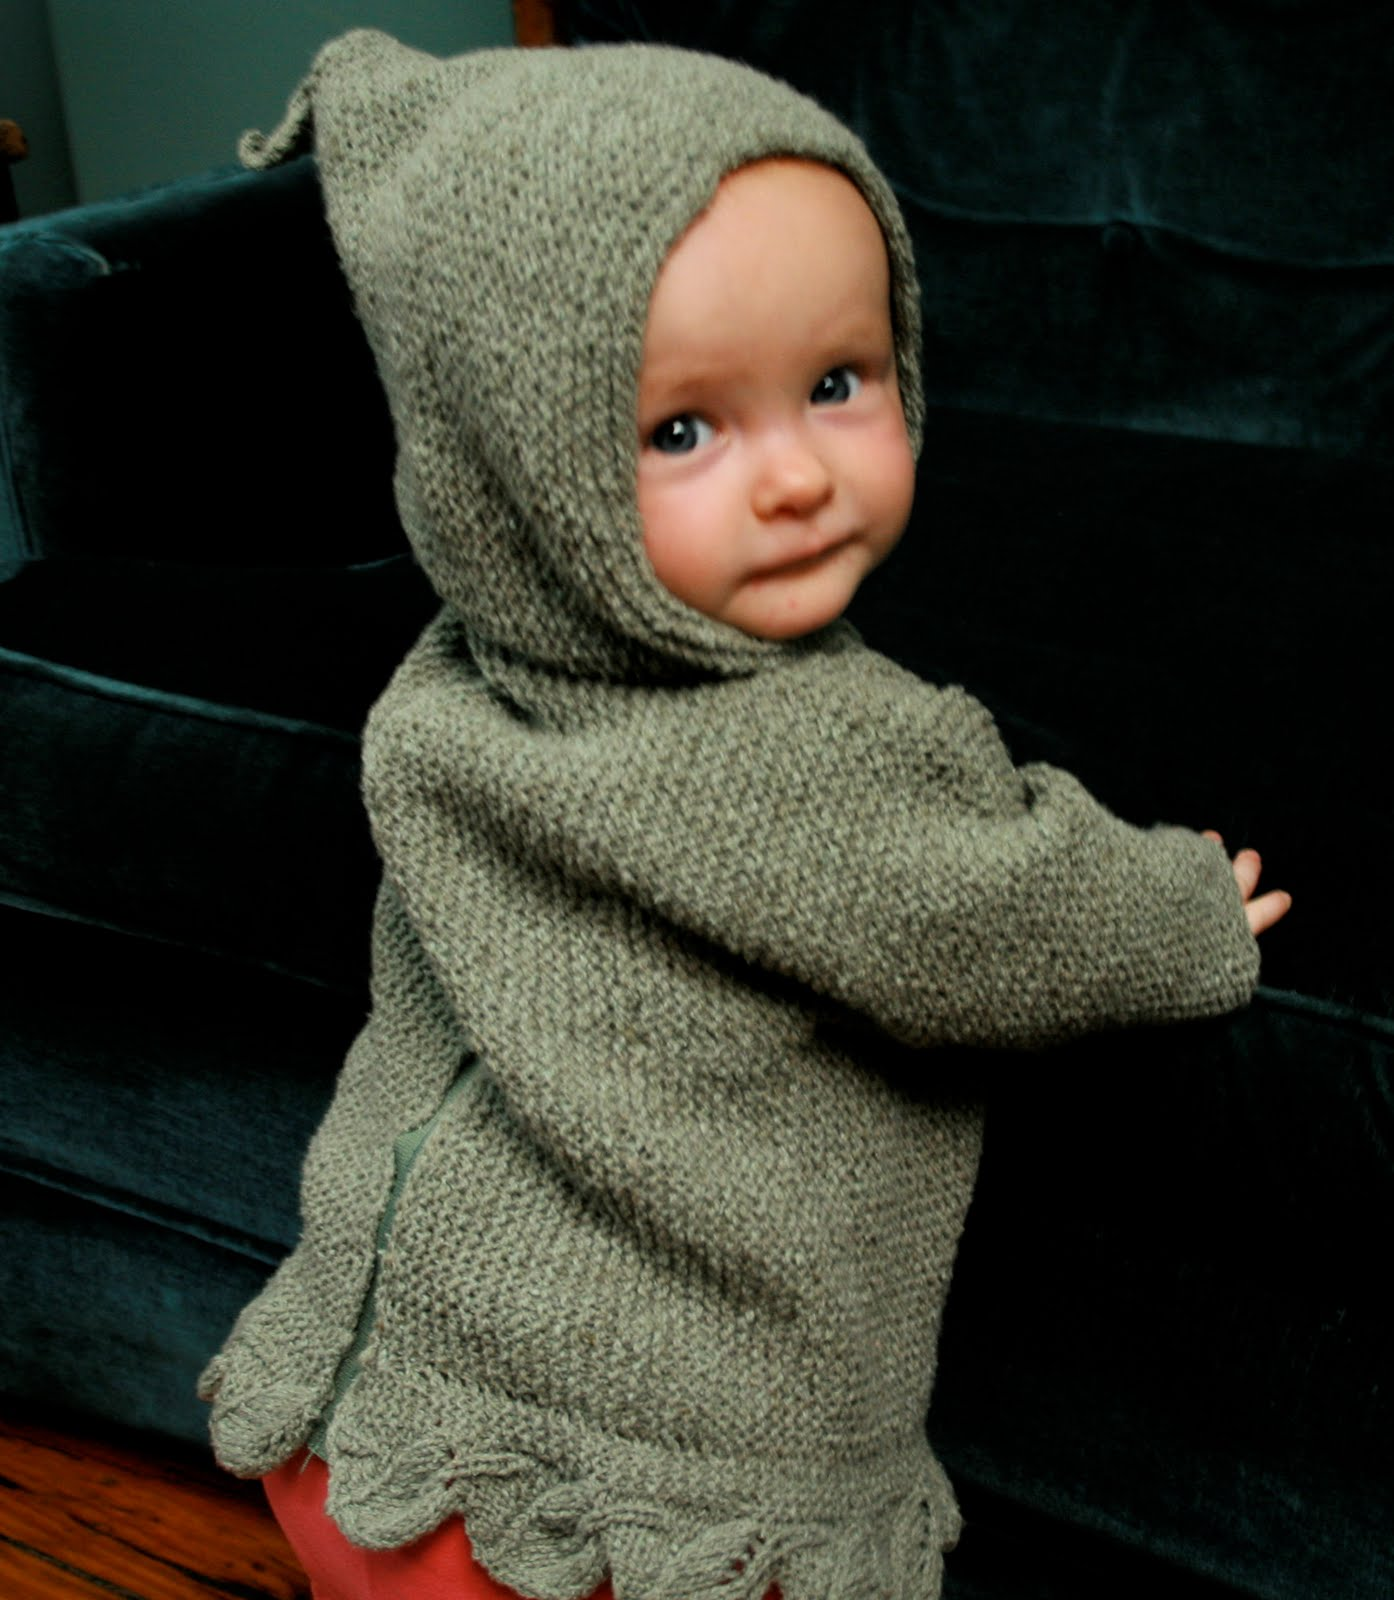 Baby Hoodie Knitting Pattern Free : 29 Aug